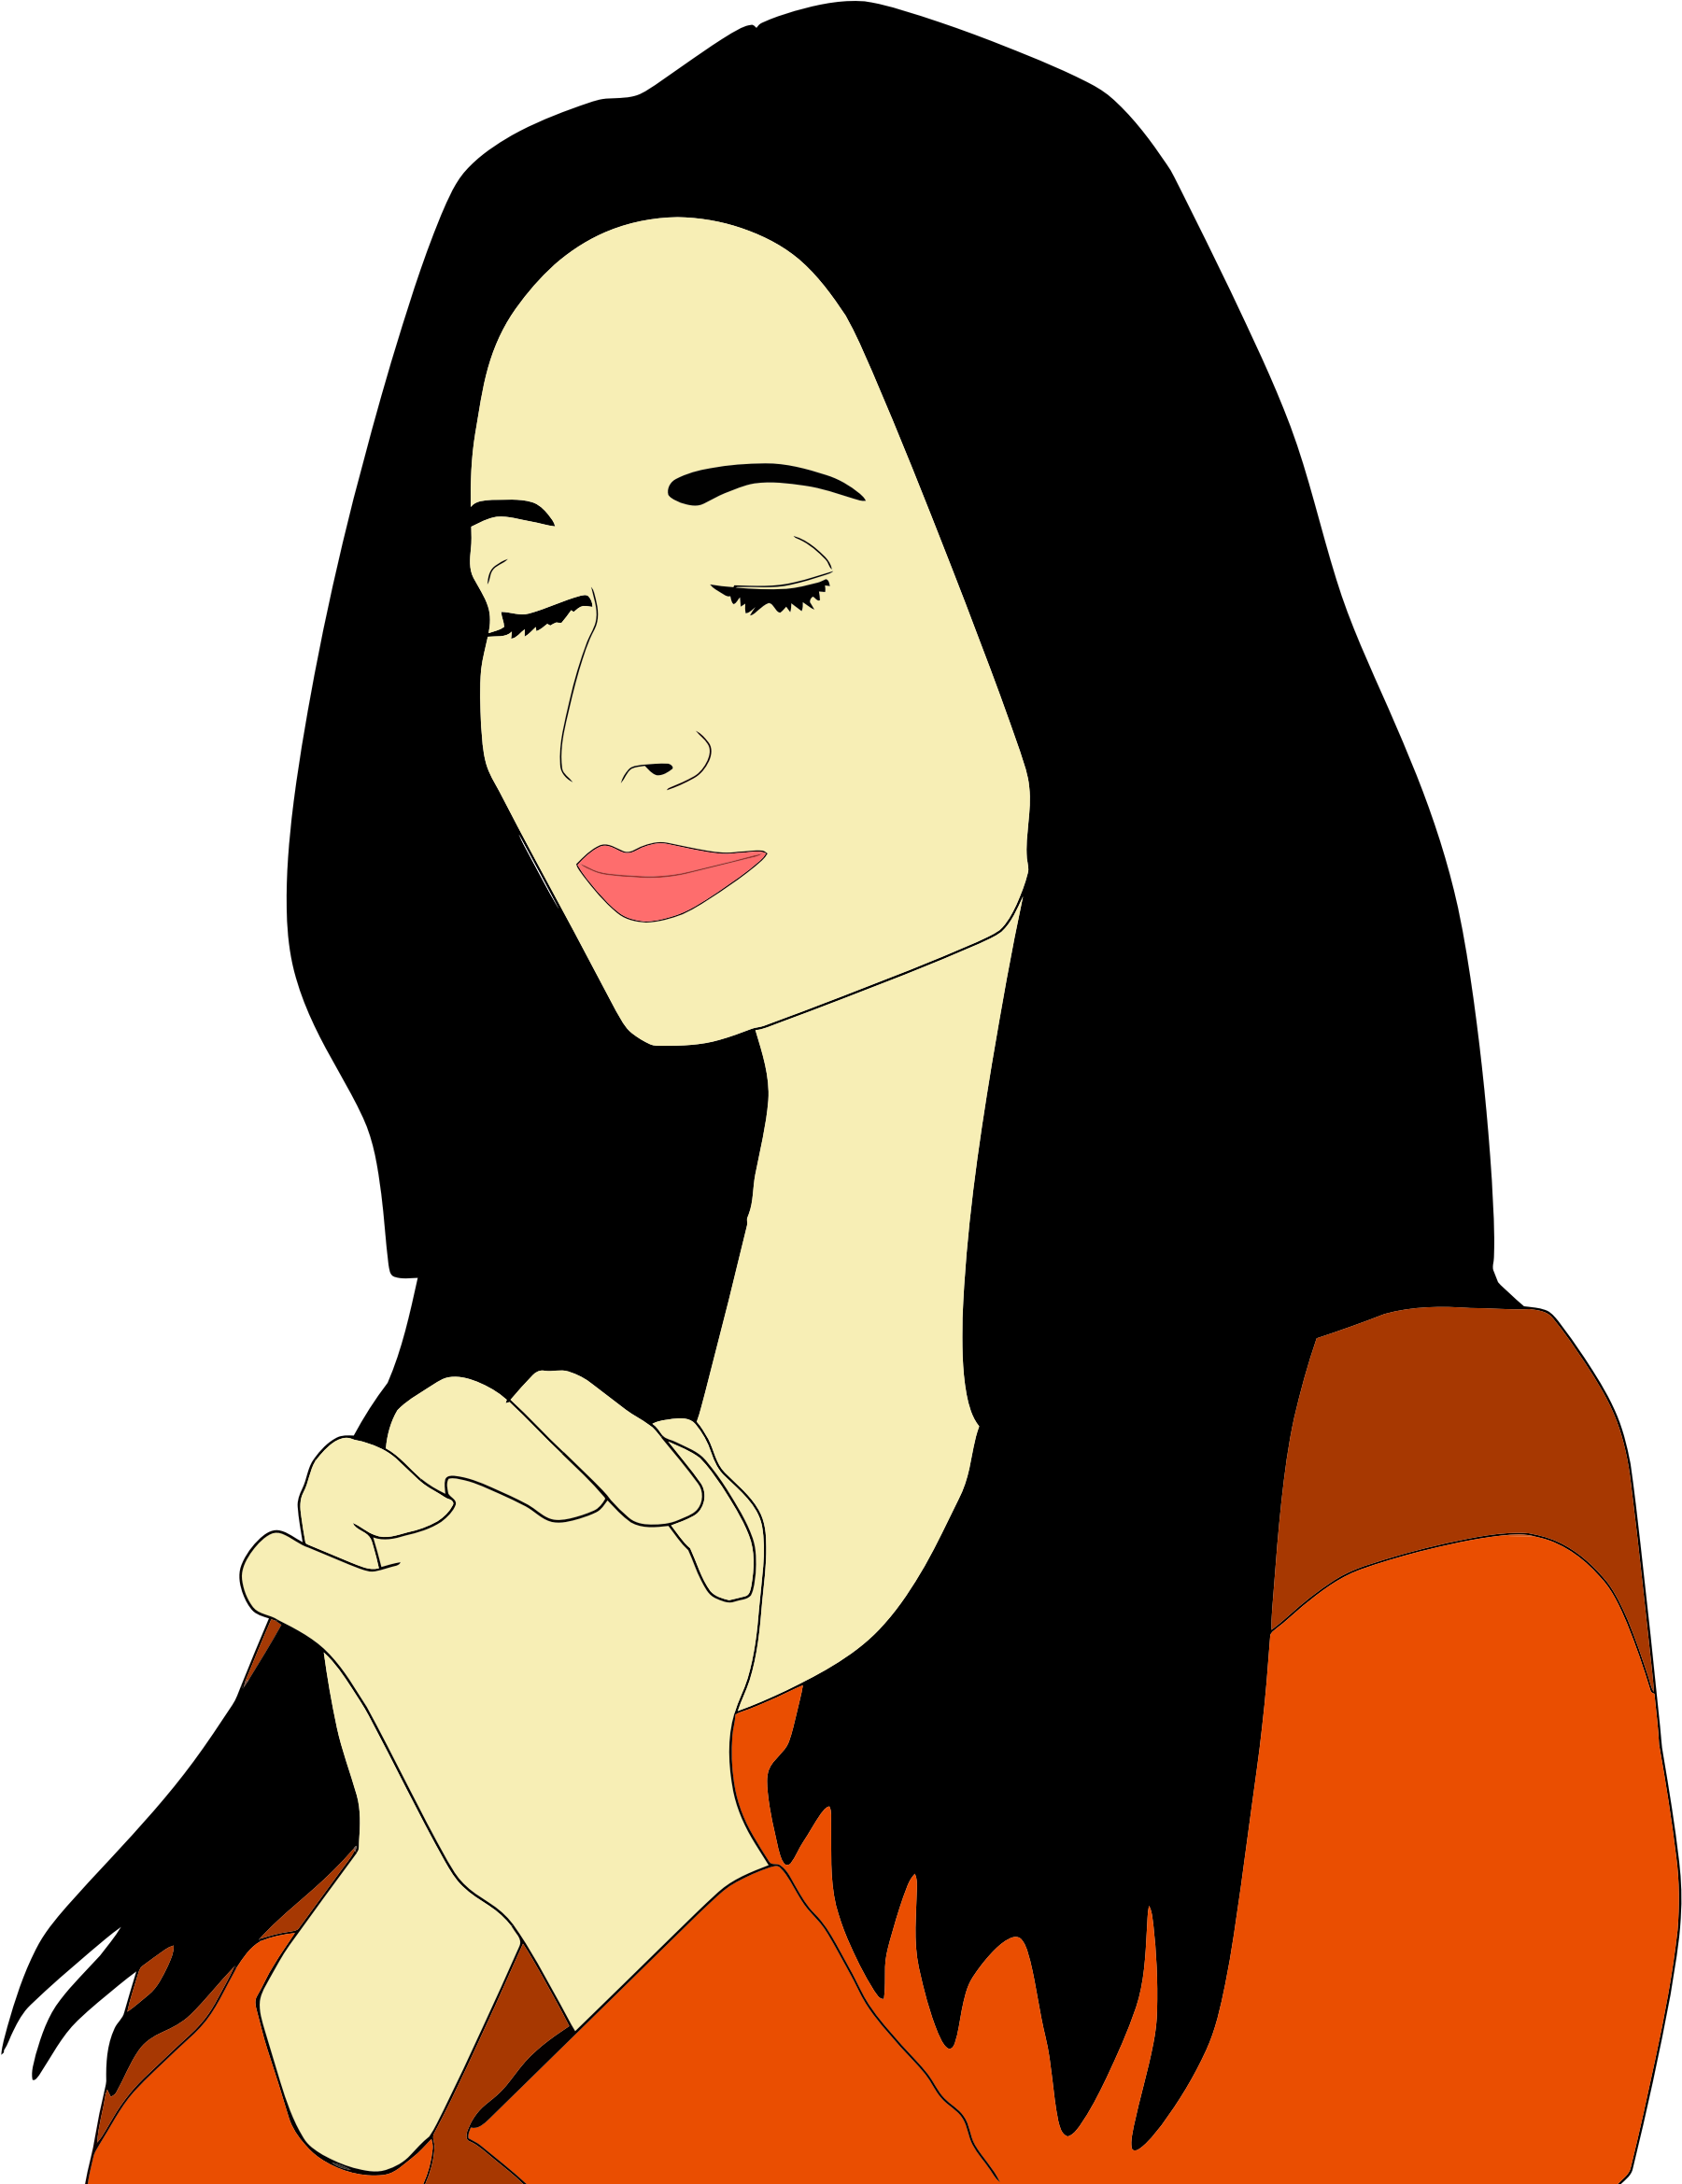 A Person Praying Clipart.